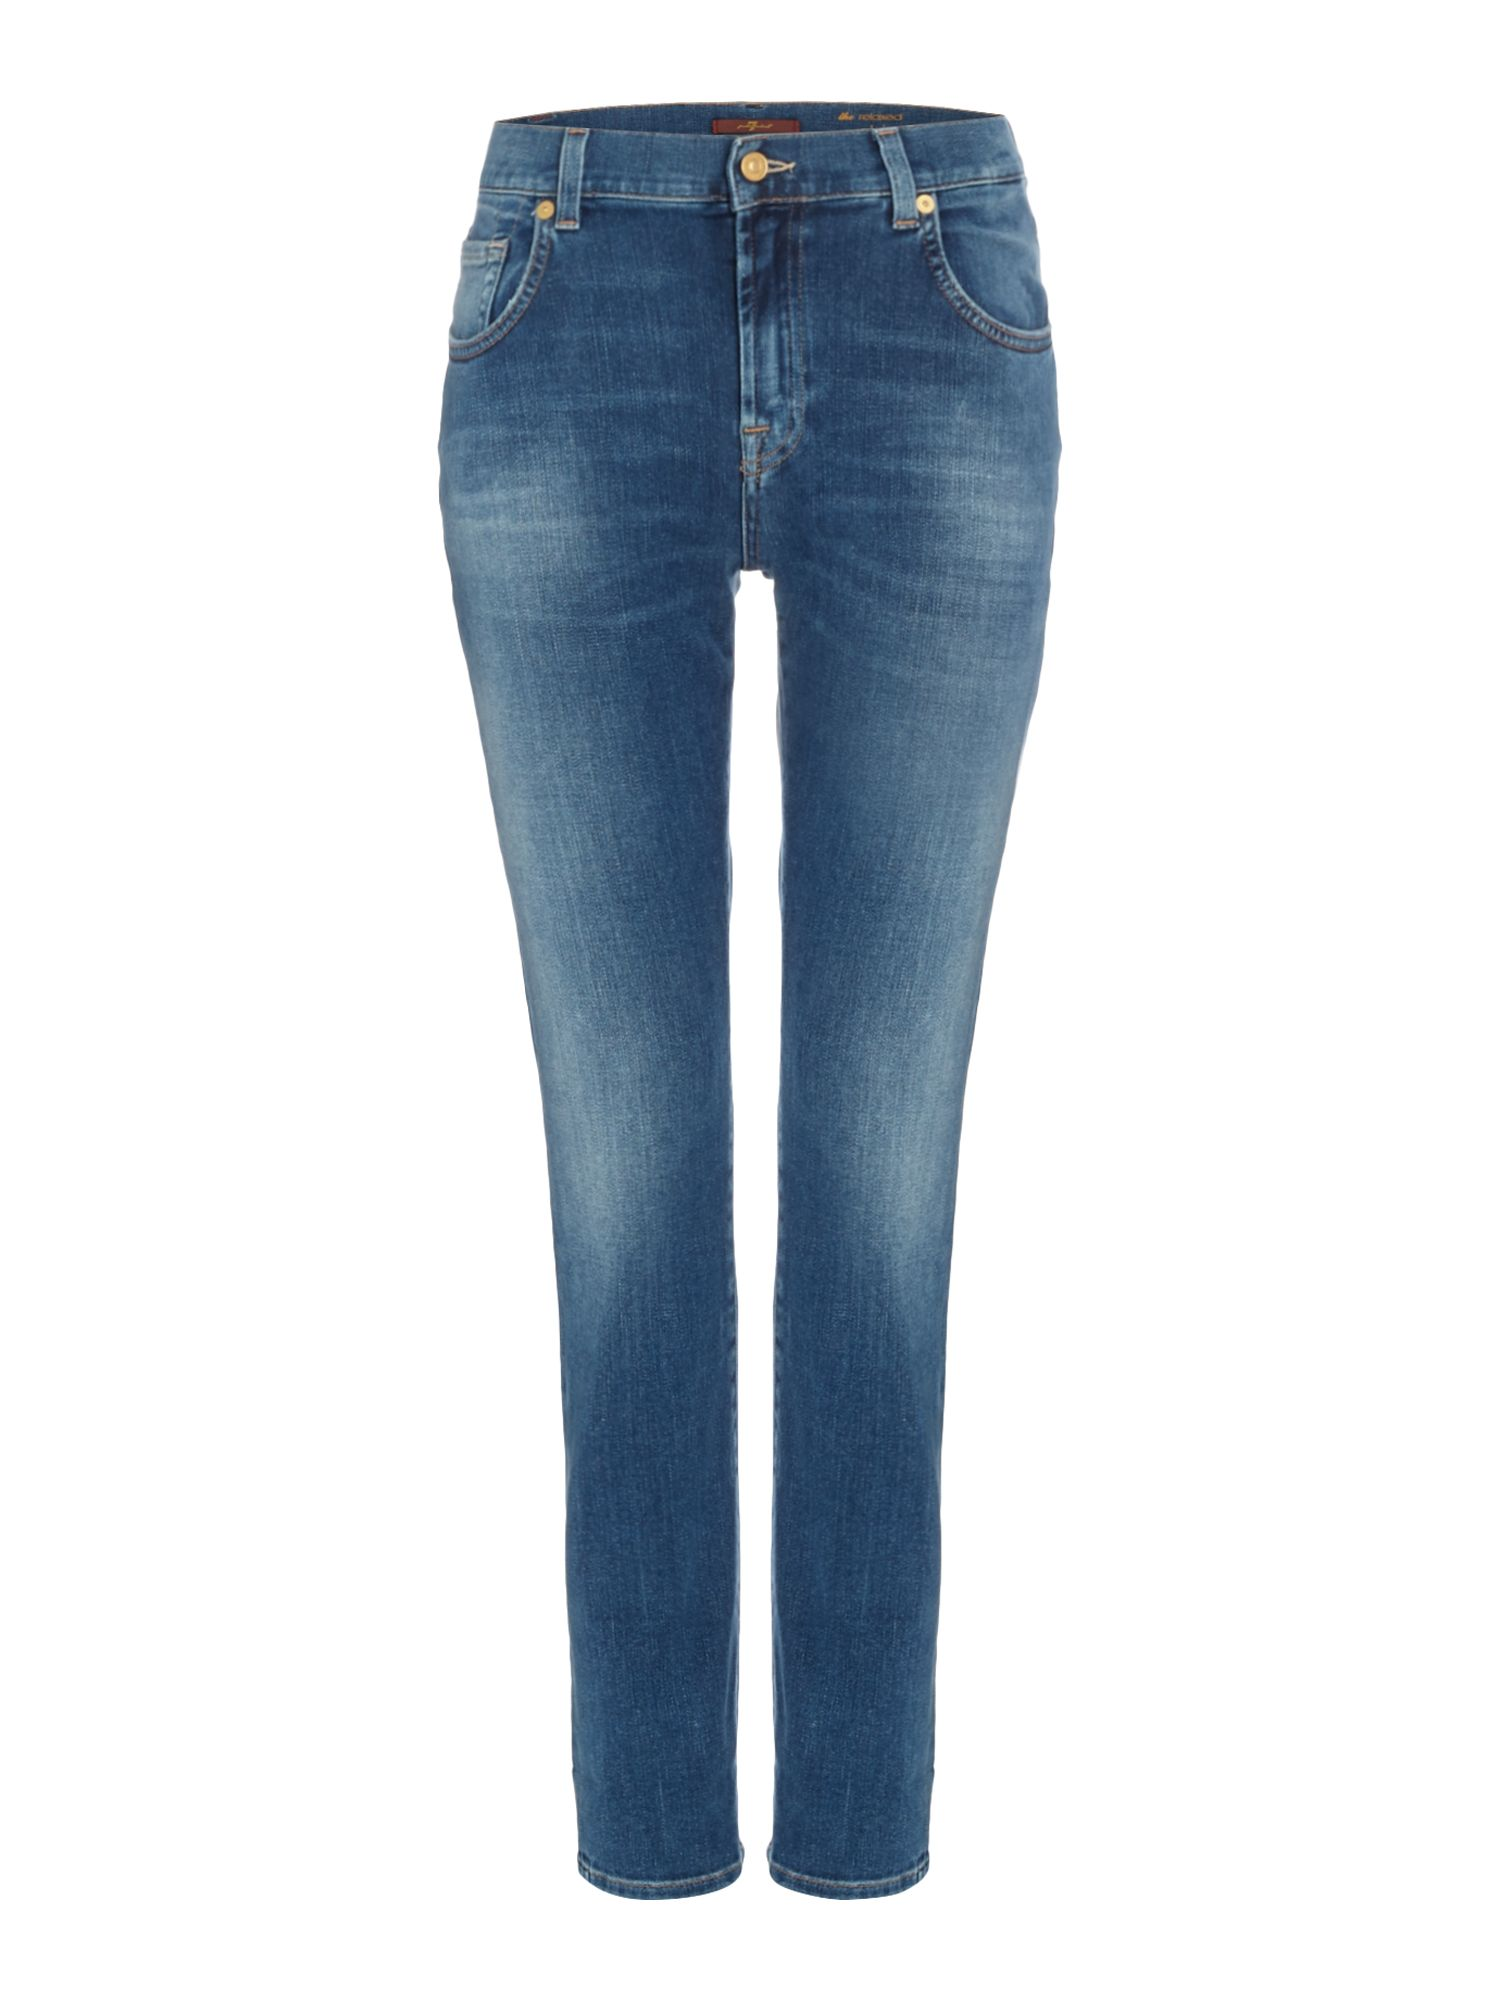 7 For All Mankind Relaxed skinny jean in aged denim, Denim Mid Wash